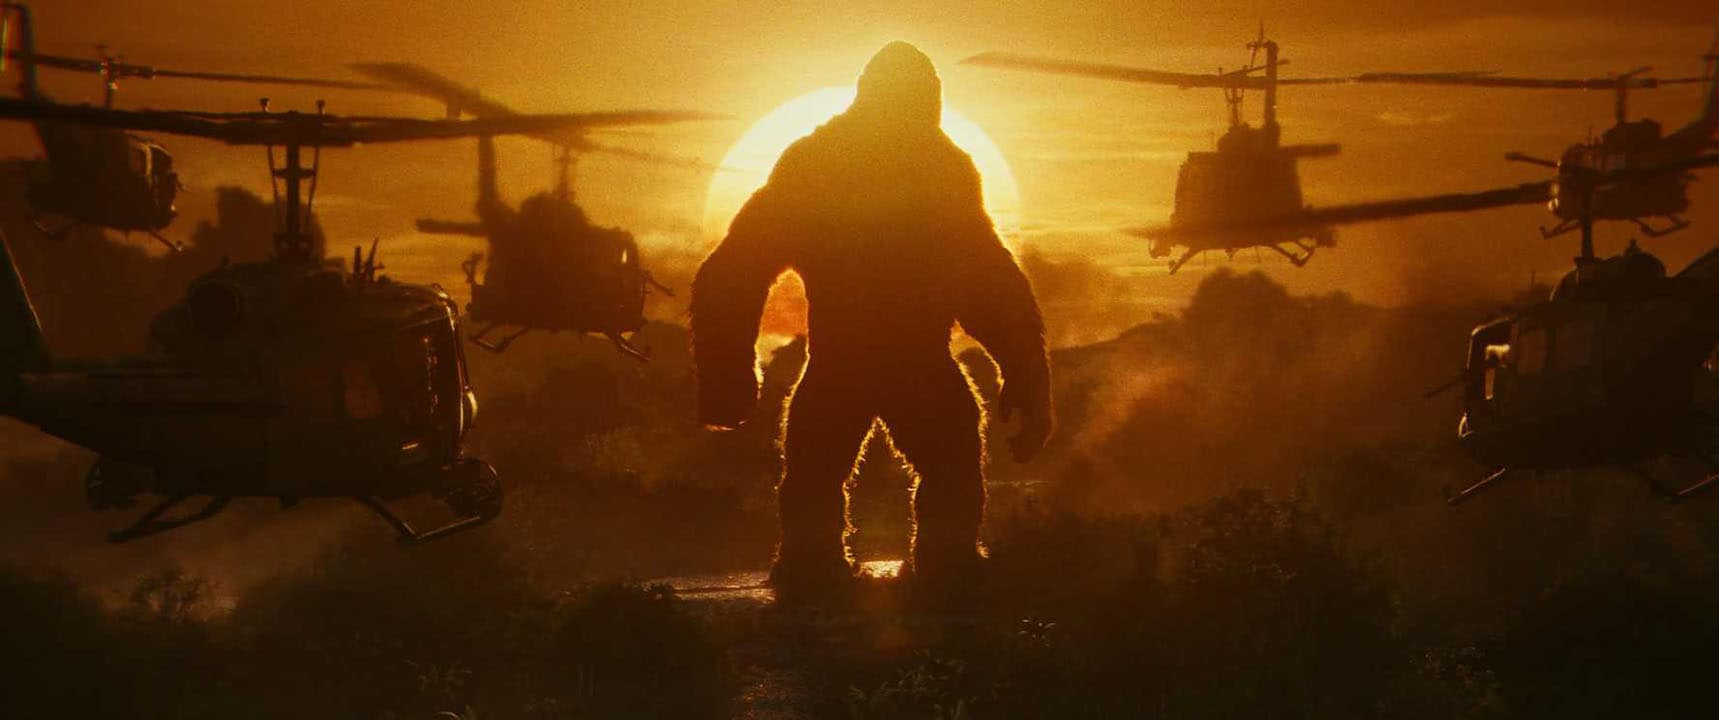 Kong Skull Island: An Insipid Homage to 'Apocalypse Now' With a Bunch of Monsters Thrown In